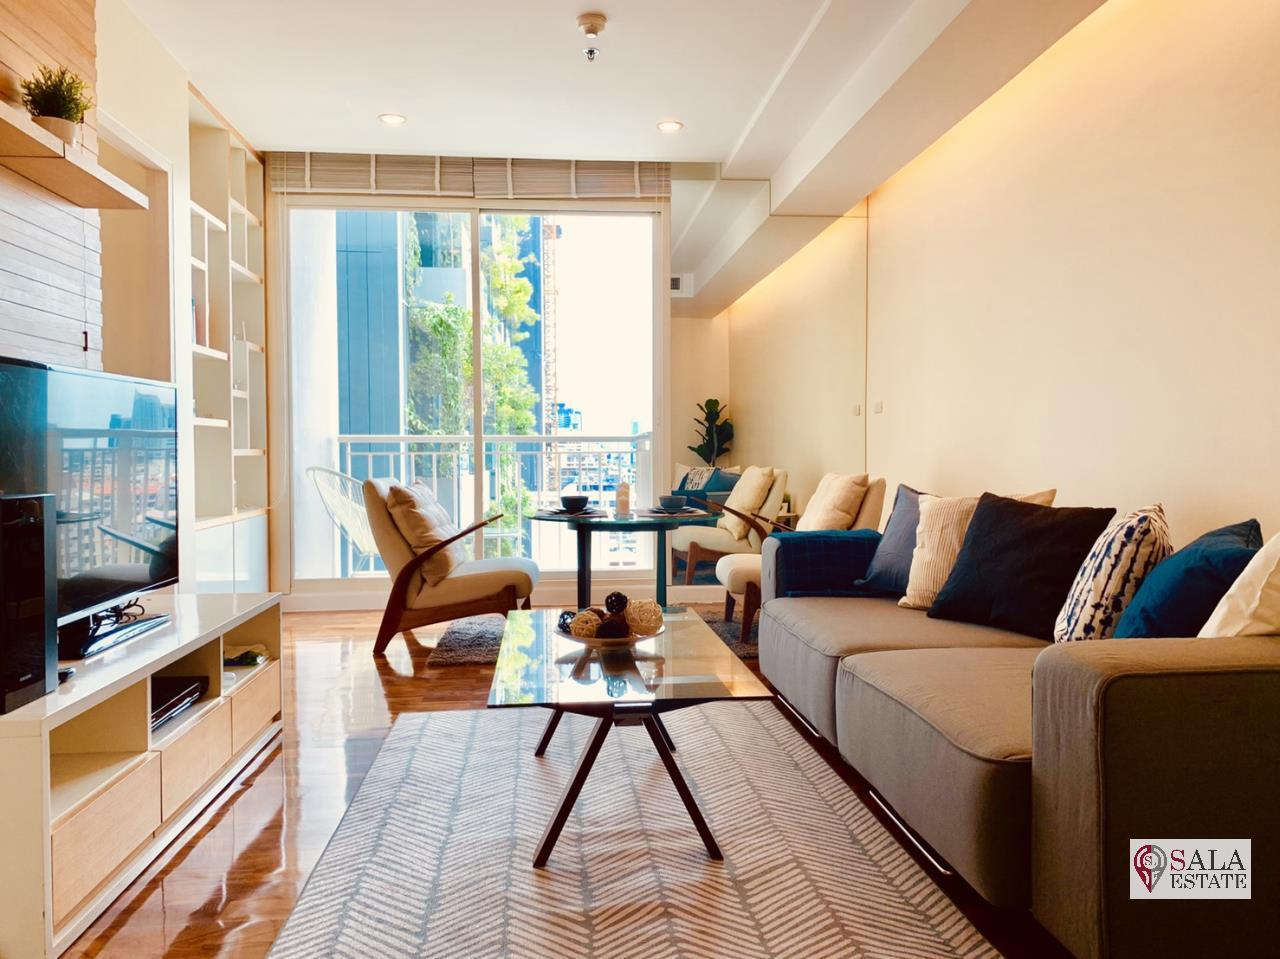 SALA ESTATE Agency's ( FOR RENT ) BAAN SIRI 31 – BTS PHROM PHONG, 58 SQM 1 BEDROOM 1 BATHROOM, FULLY FURNISHED, CITY VIEW 1